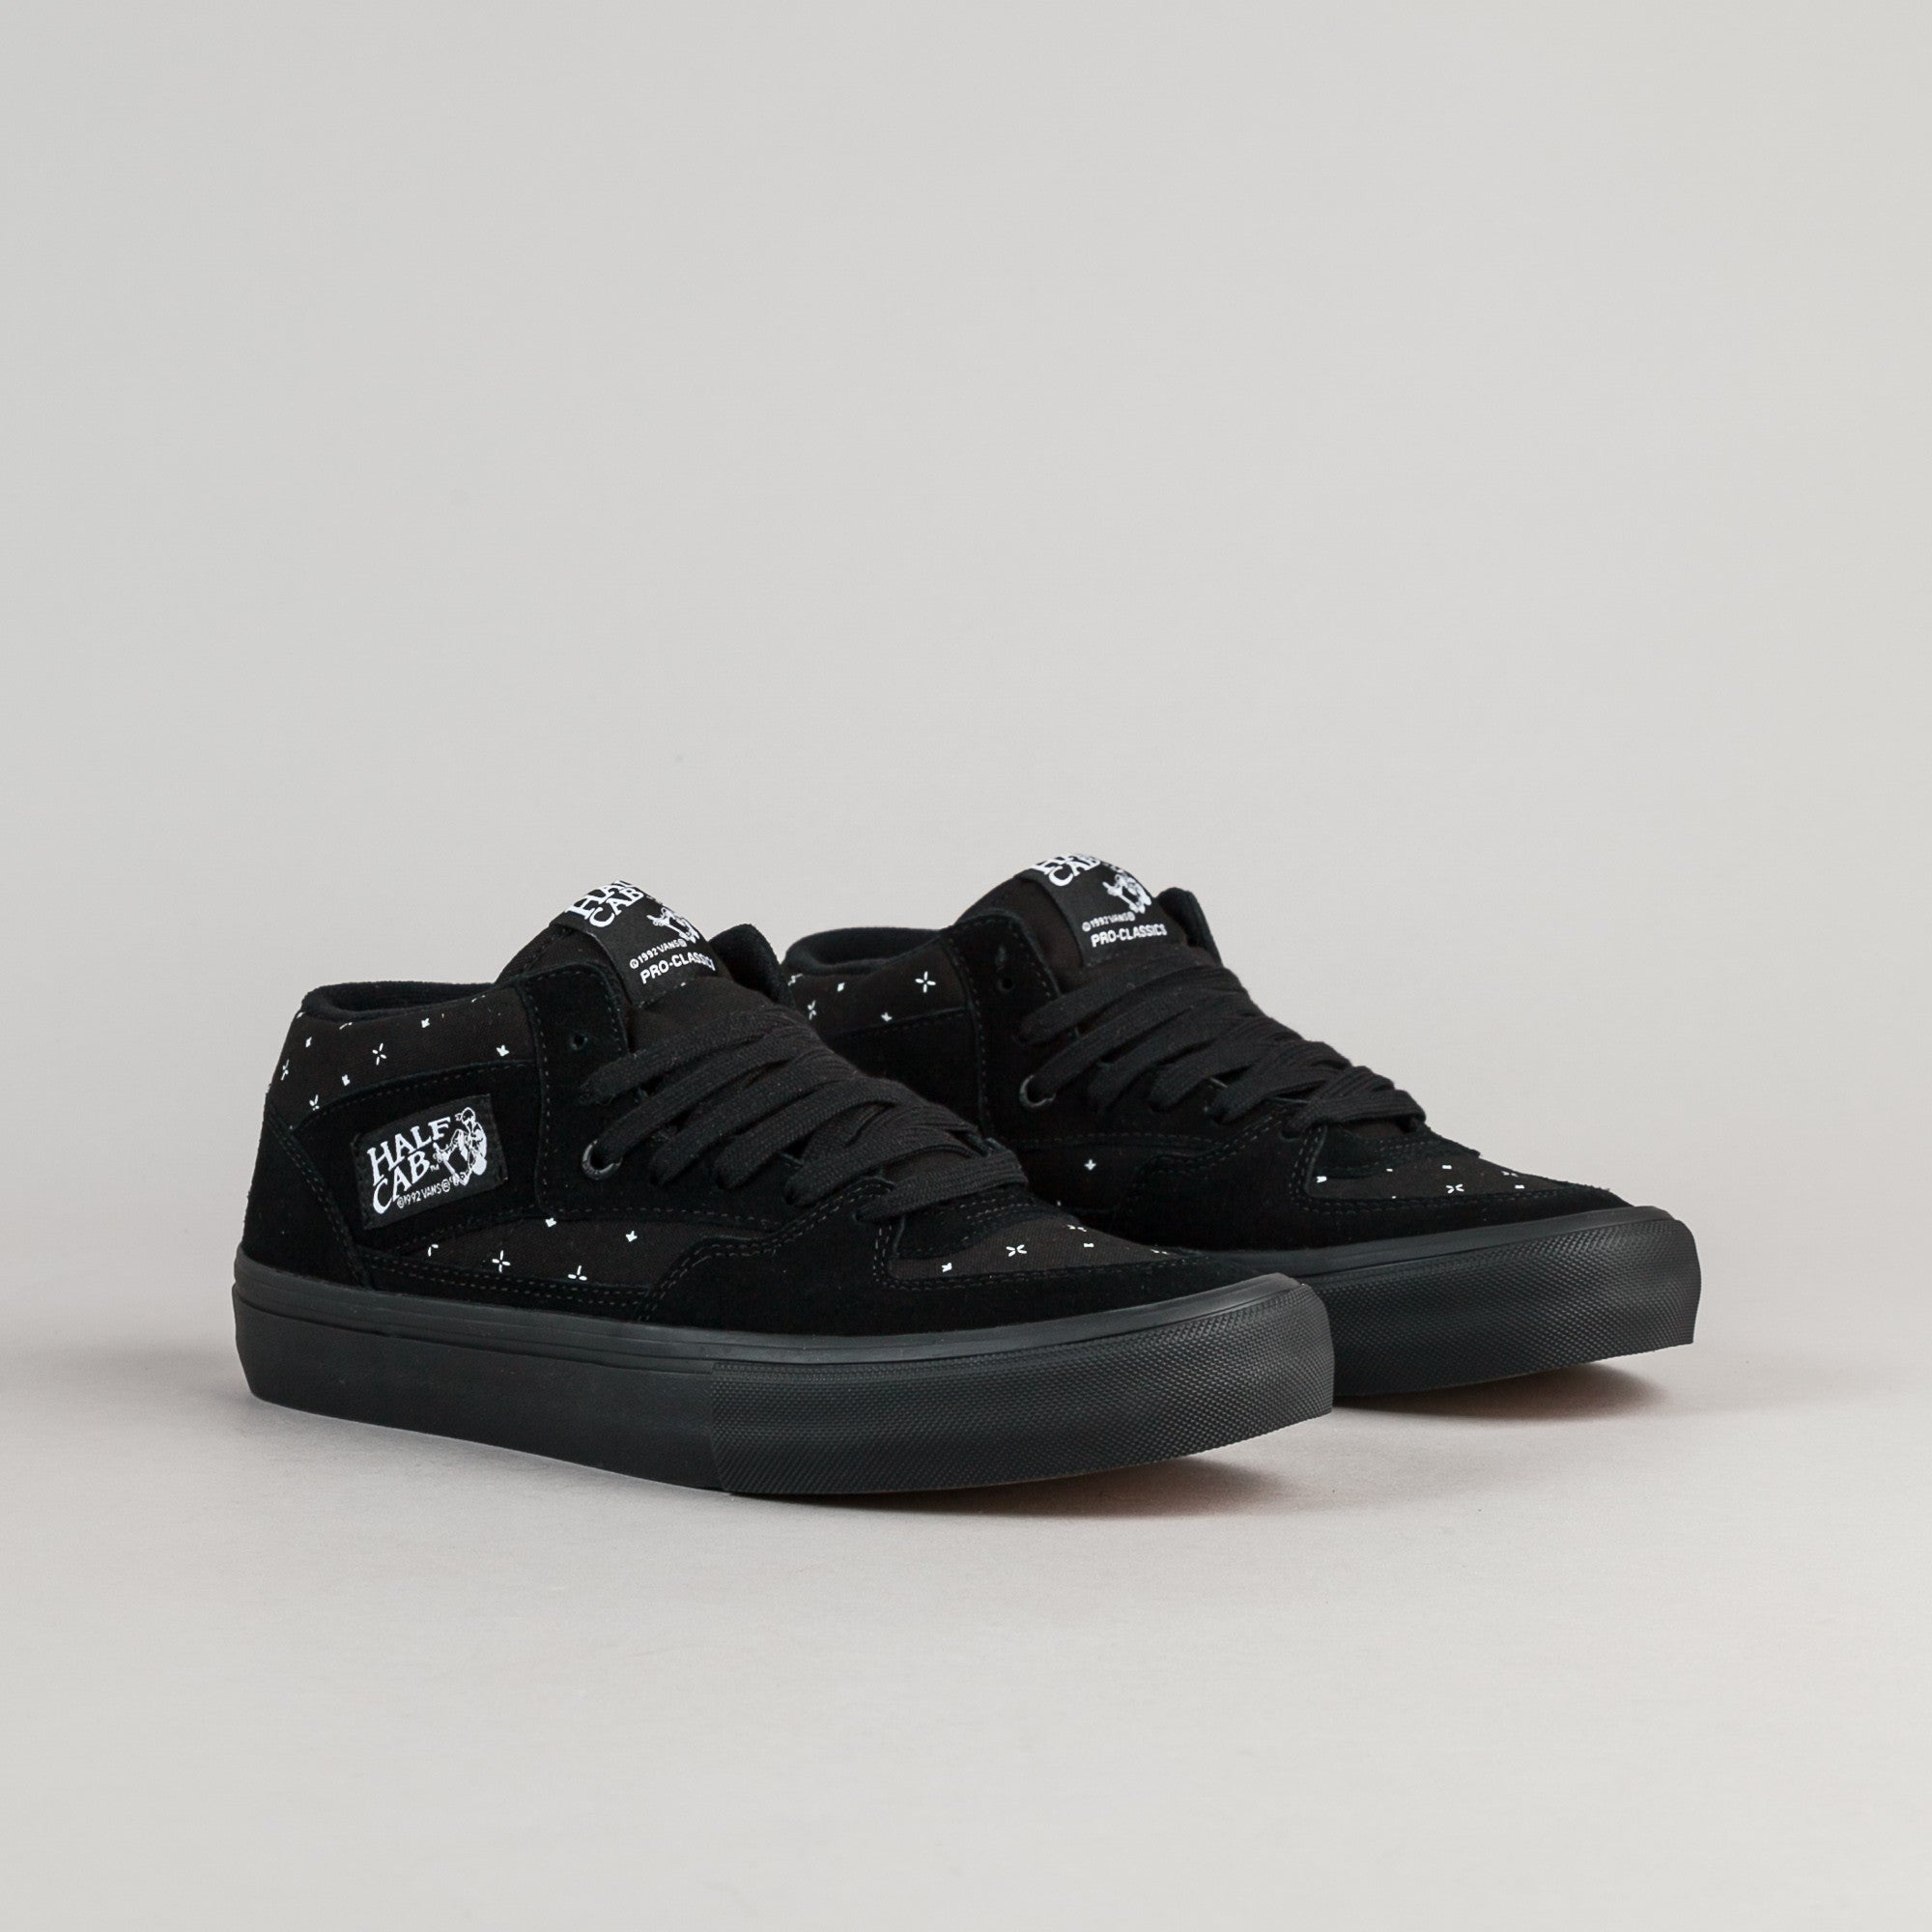 Vans Half Cab Pro Shoes - (Bandana) Black